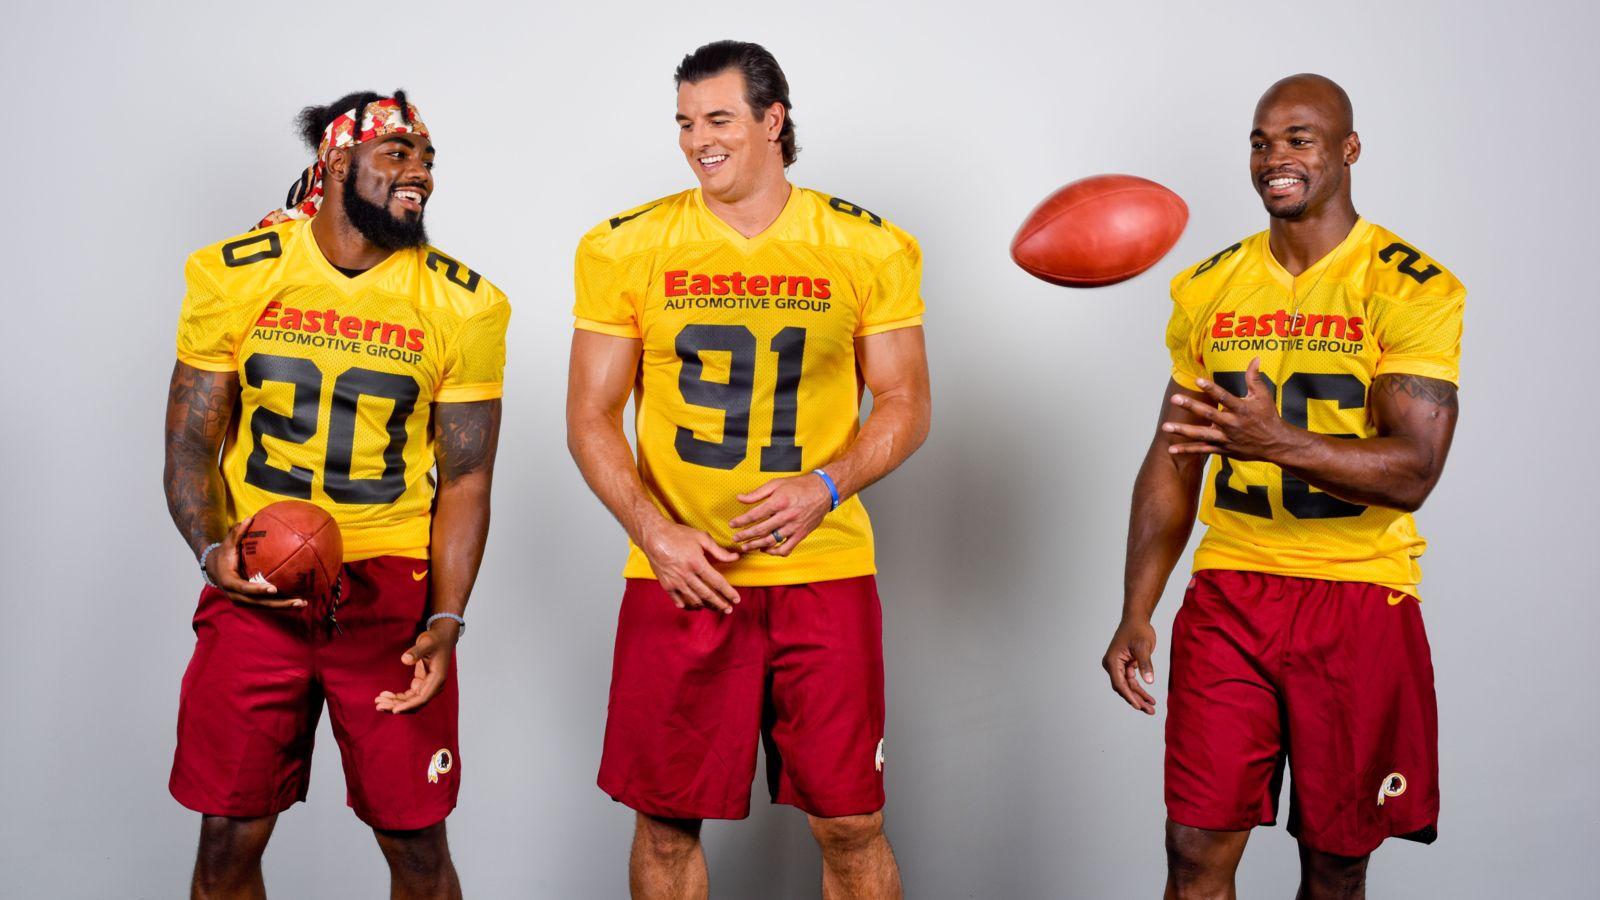 Redskins Commercial Shoot Virginia